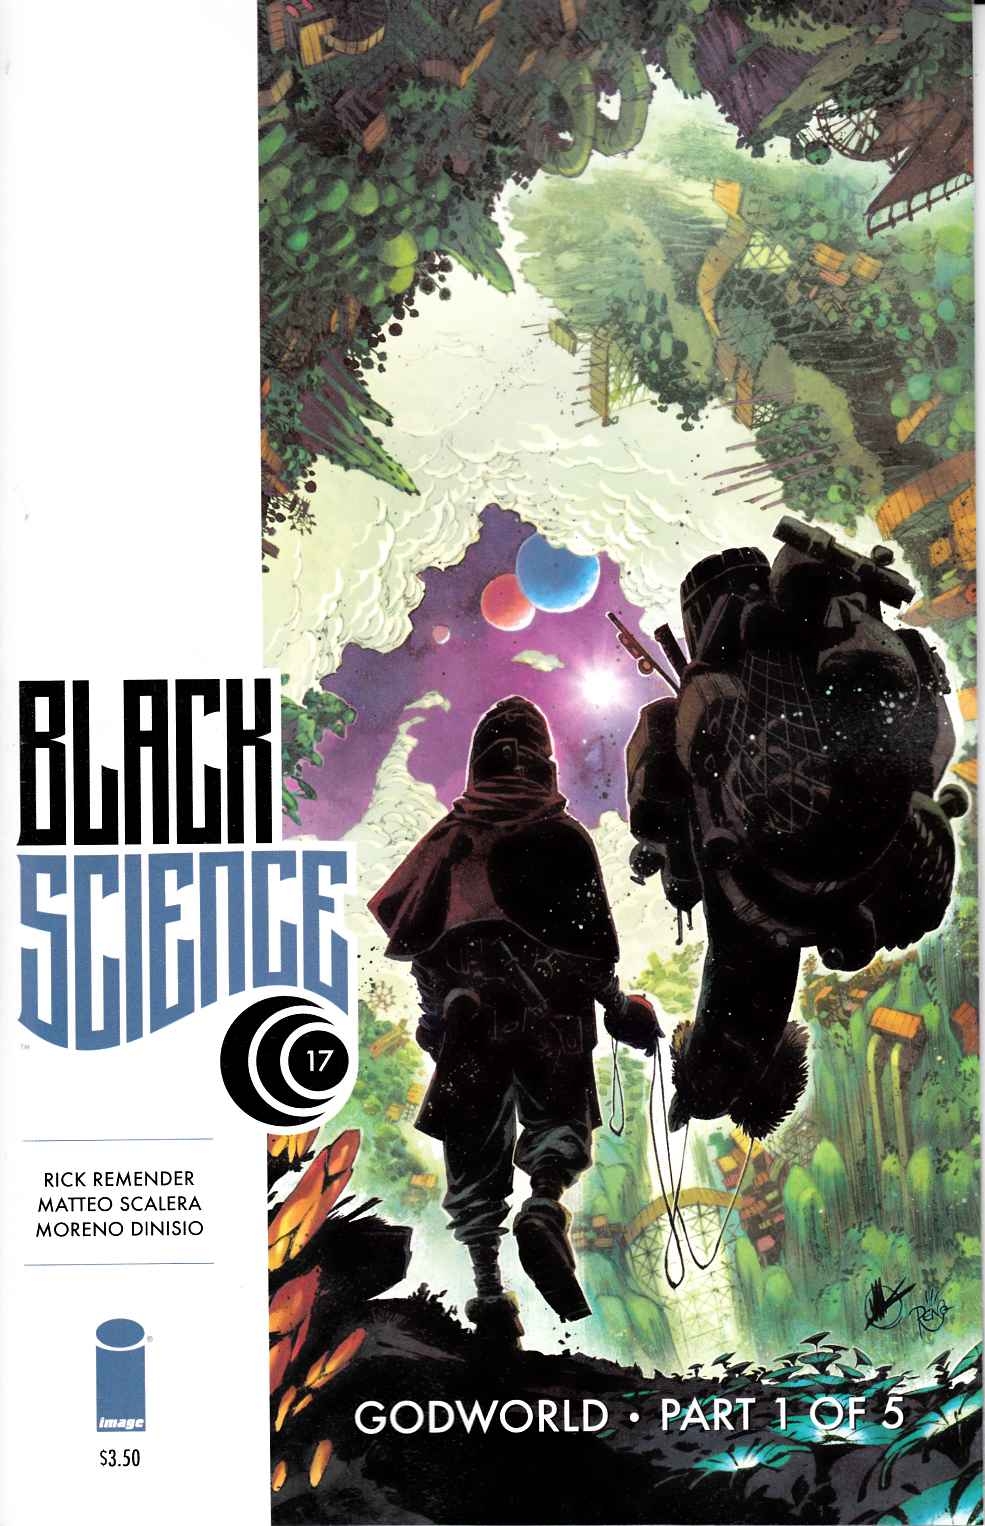 Black Science #17 [Image Comic]